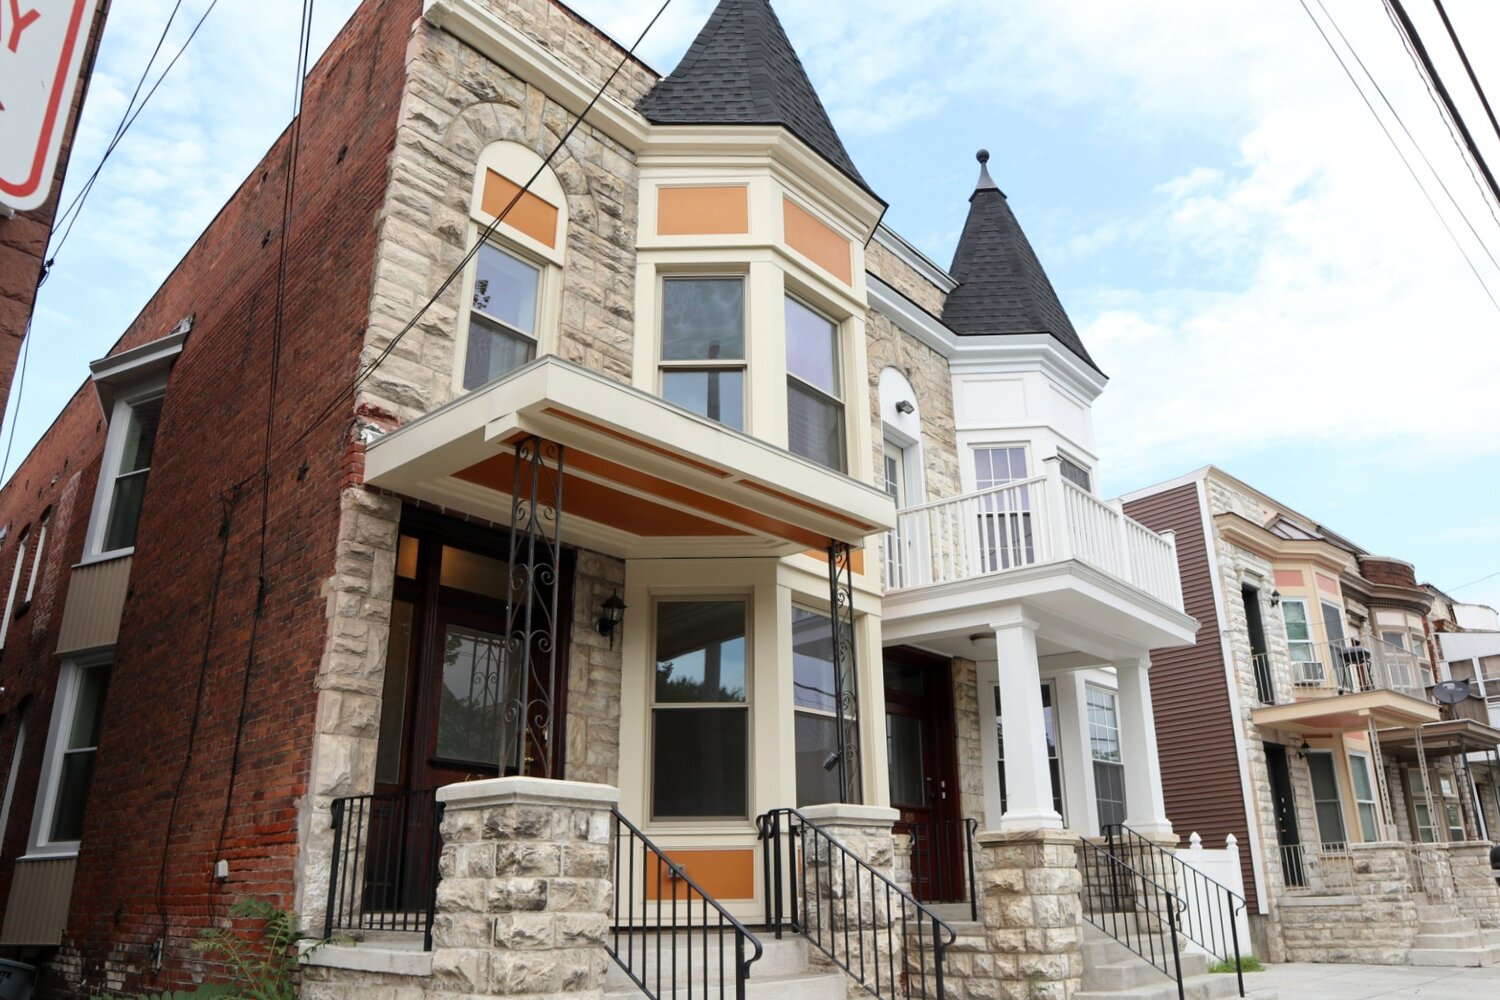 Recent Habitat homes in North Central Troy